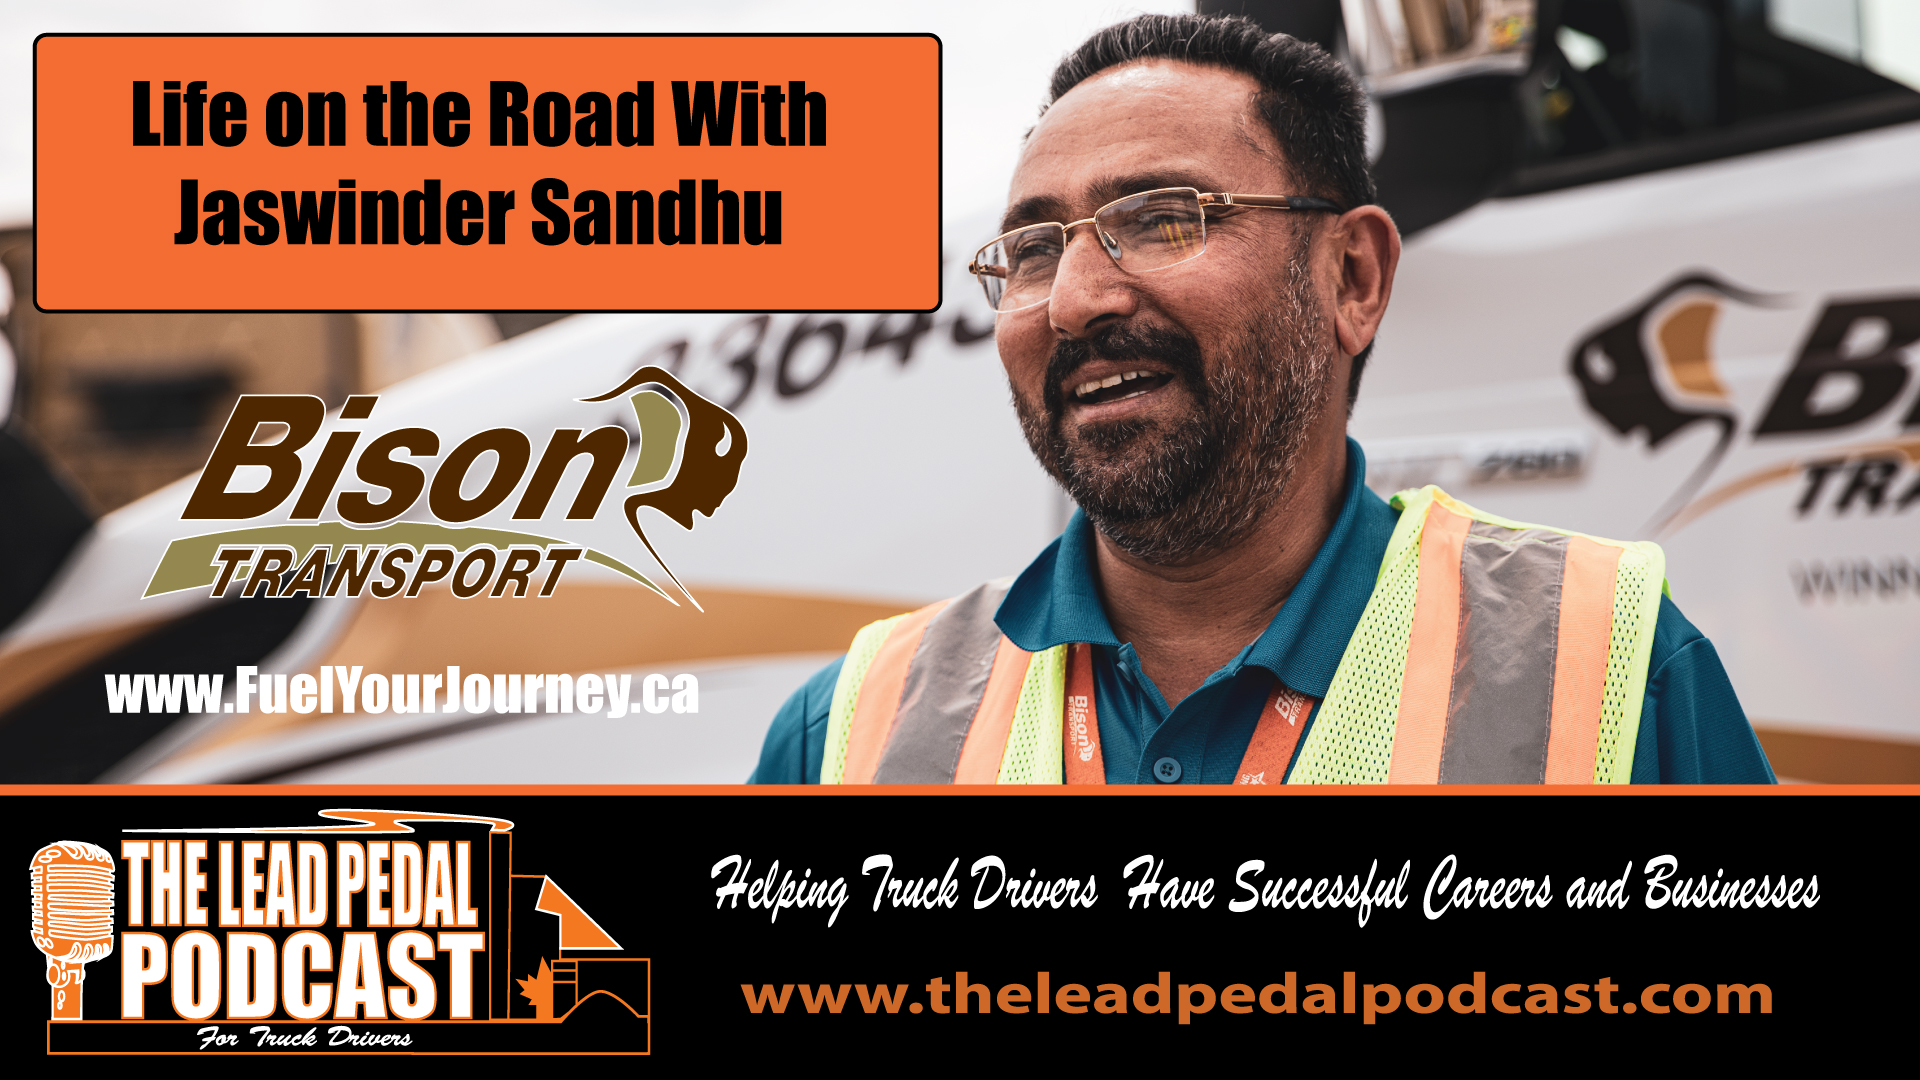 Fueling the Journey with Jaswinder Sandhu of Bison Transport